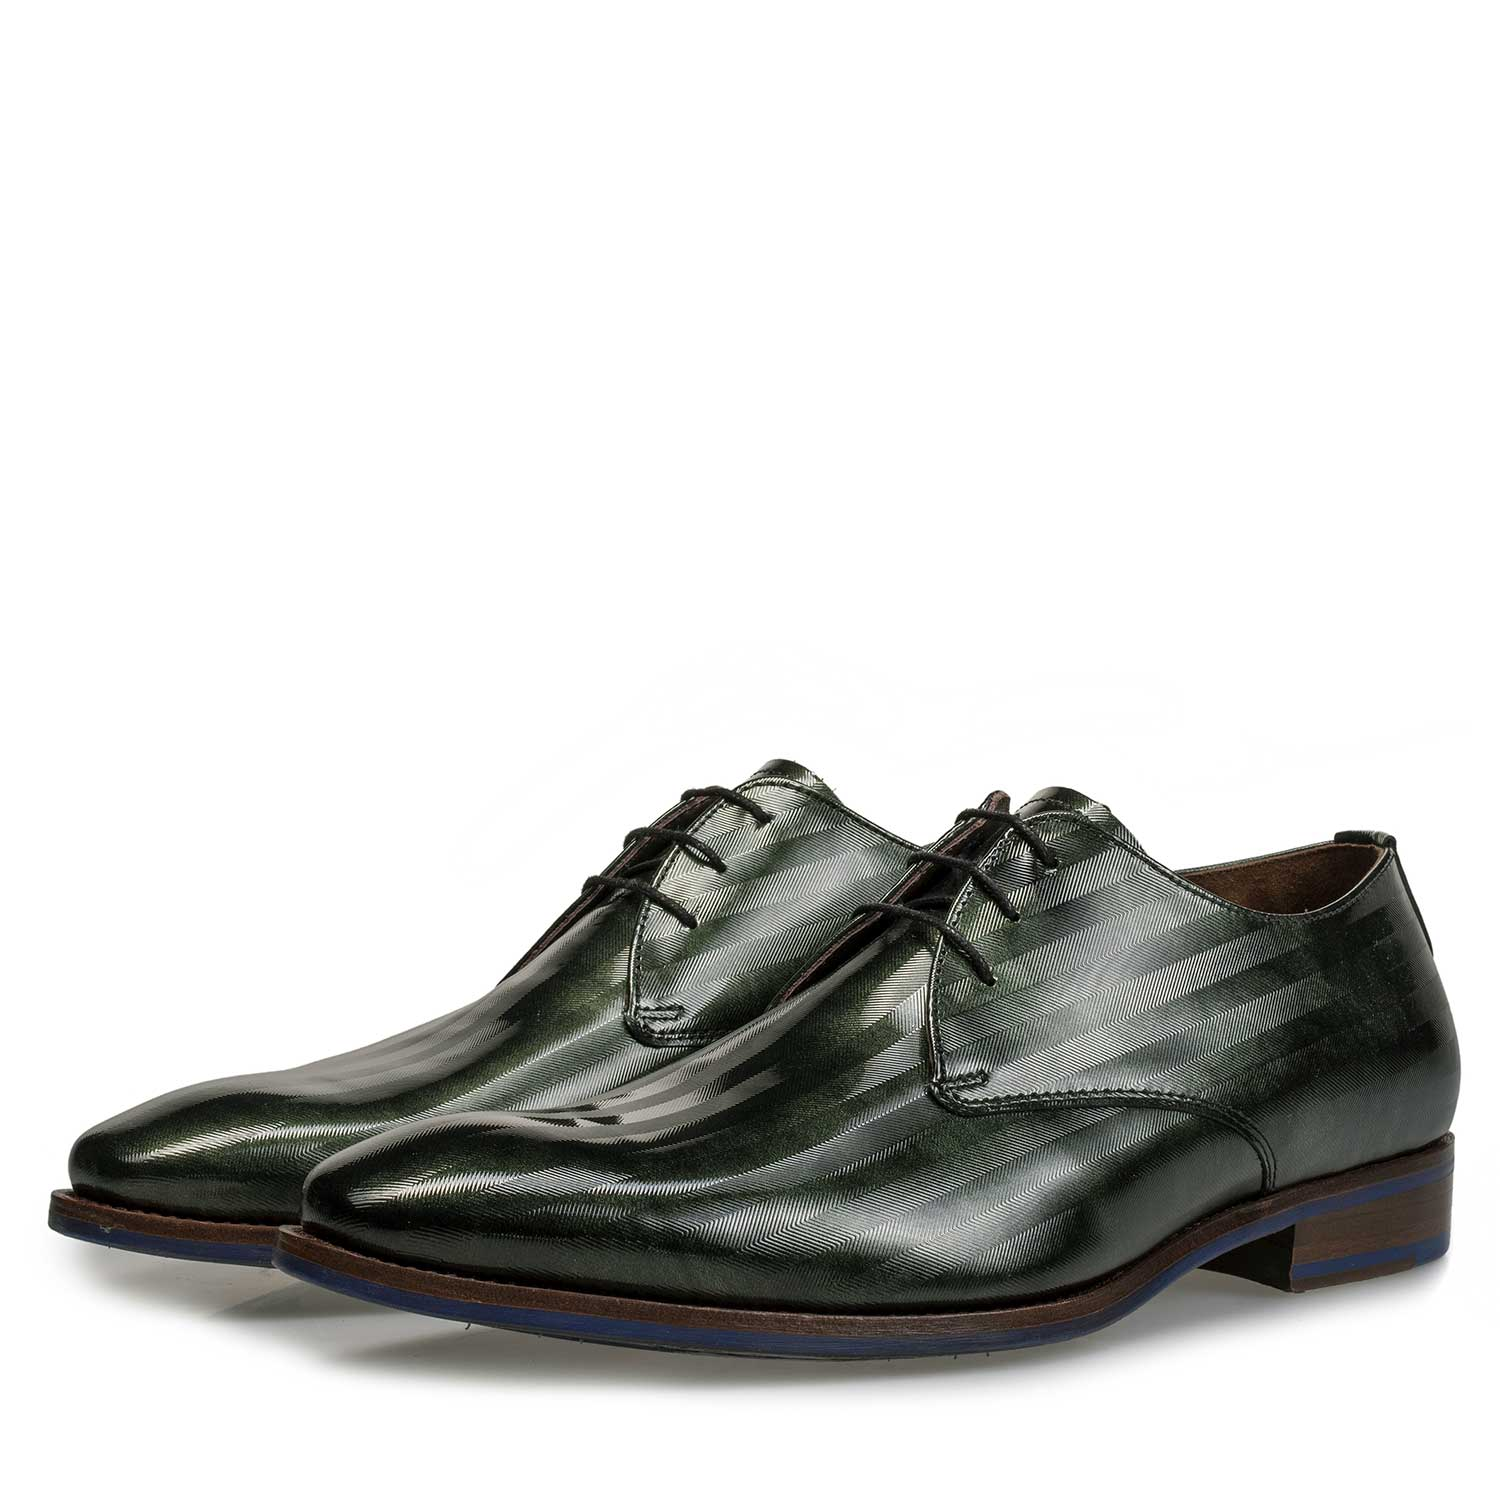 18066/00 - Green Premium patent leather lace shoe